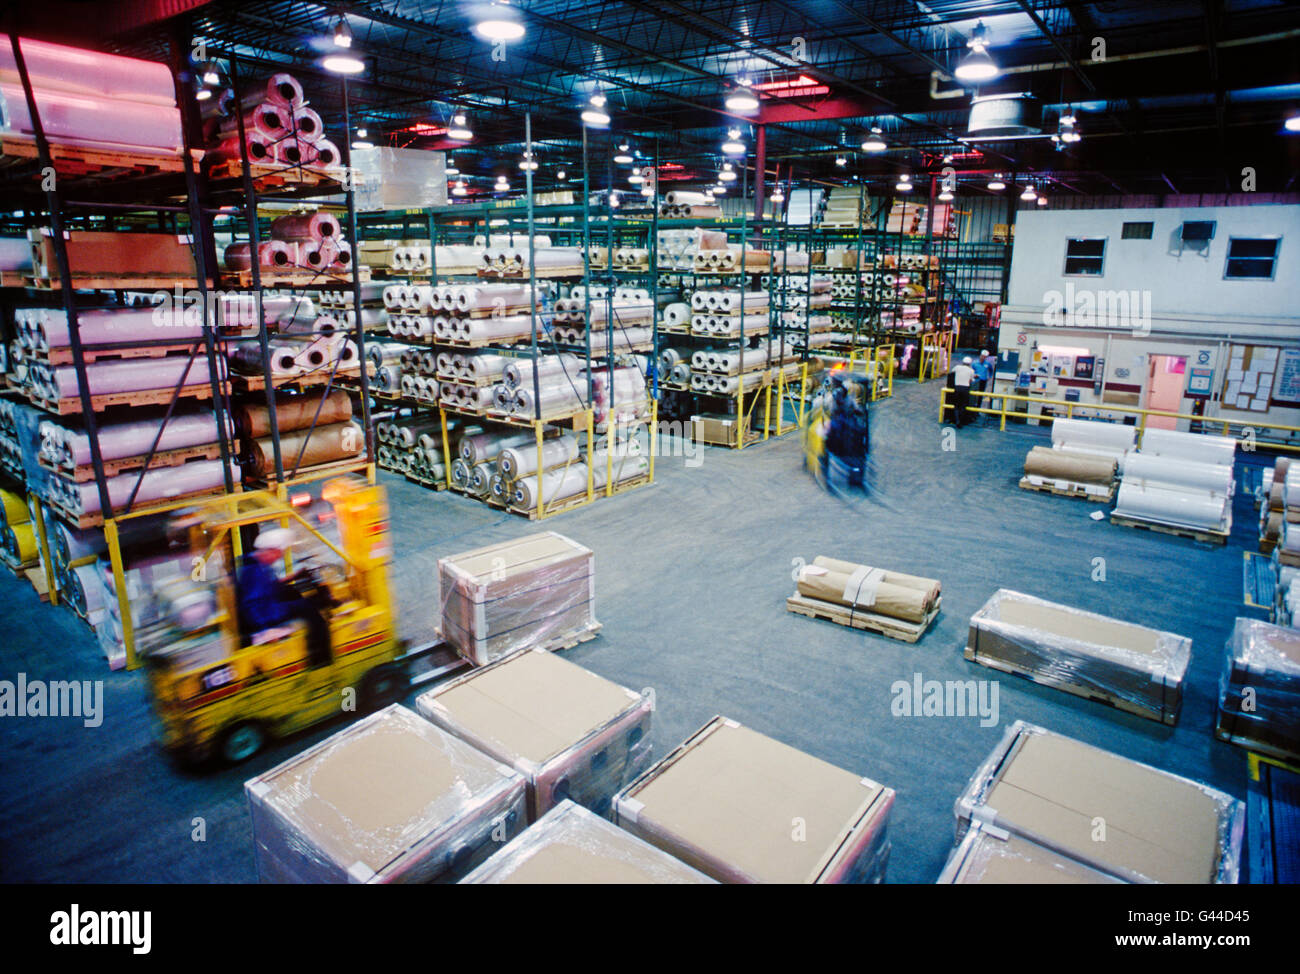 Forklifts working in a large distribution warehouse - Stock Image